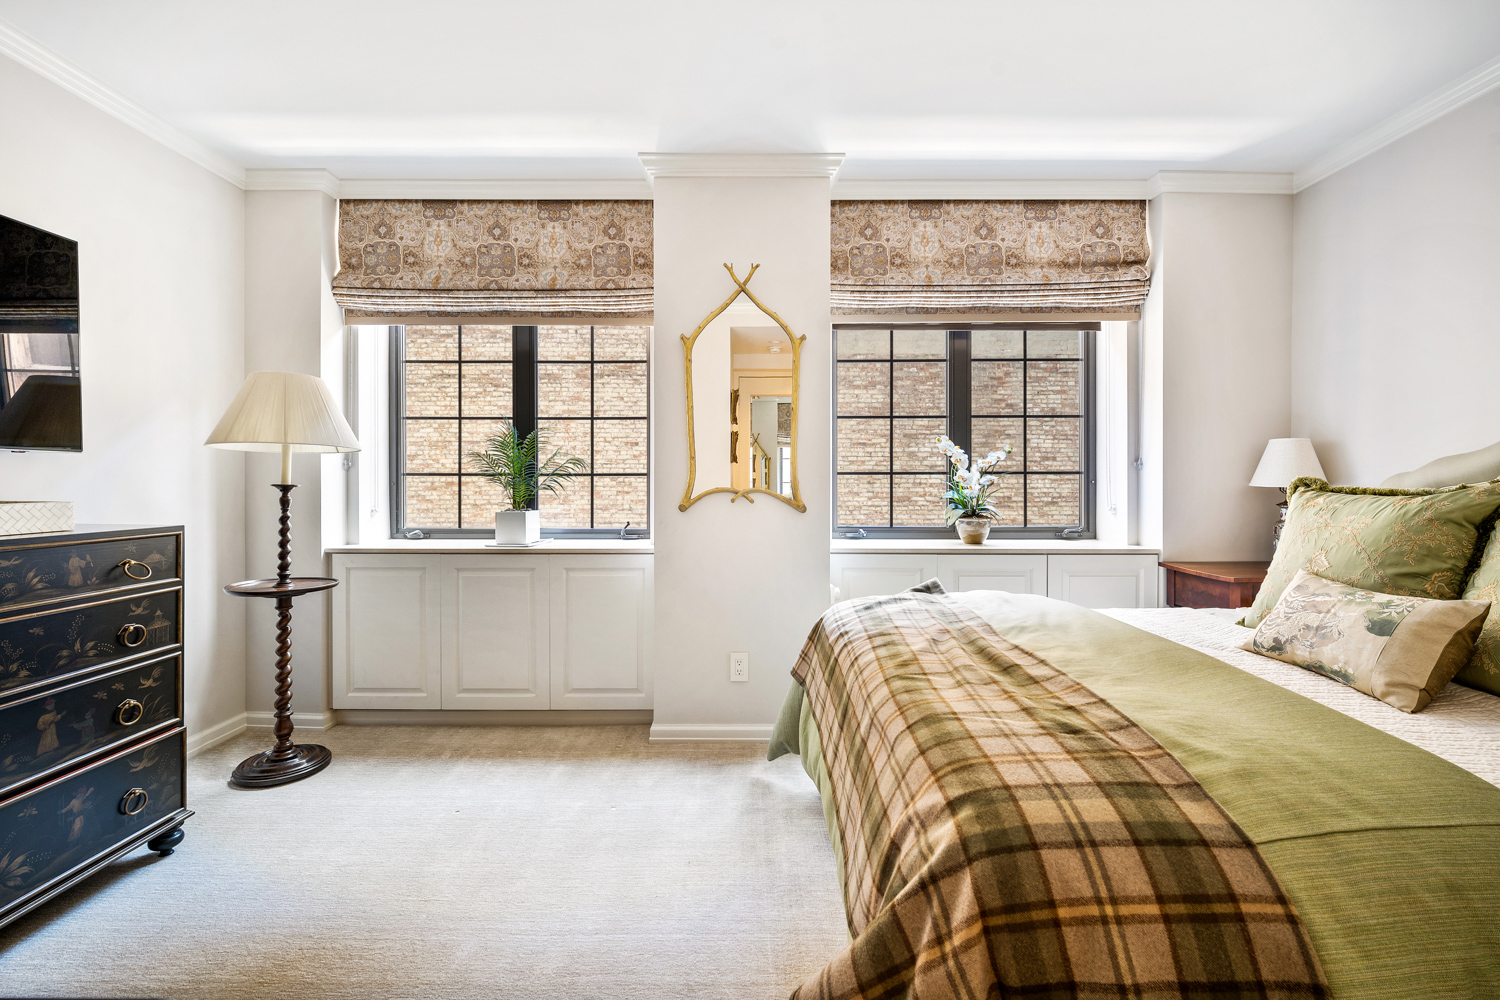 955 Fifth Avenue Upper East Side New York NY 10075